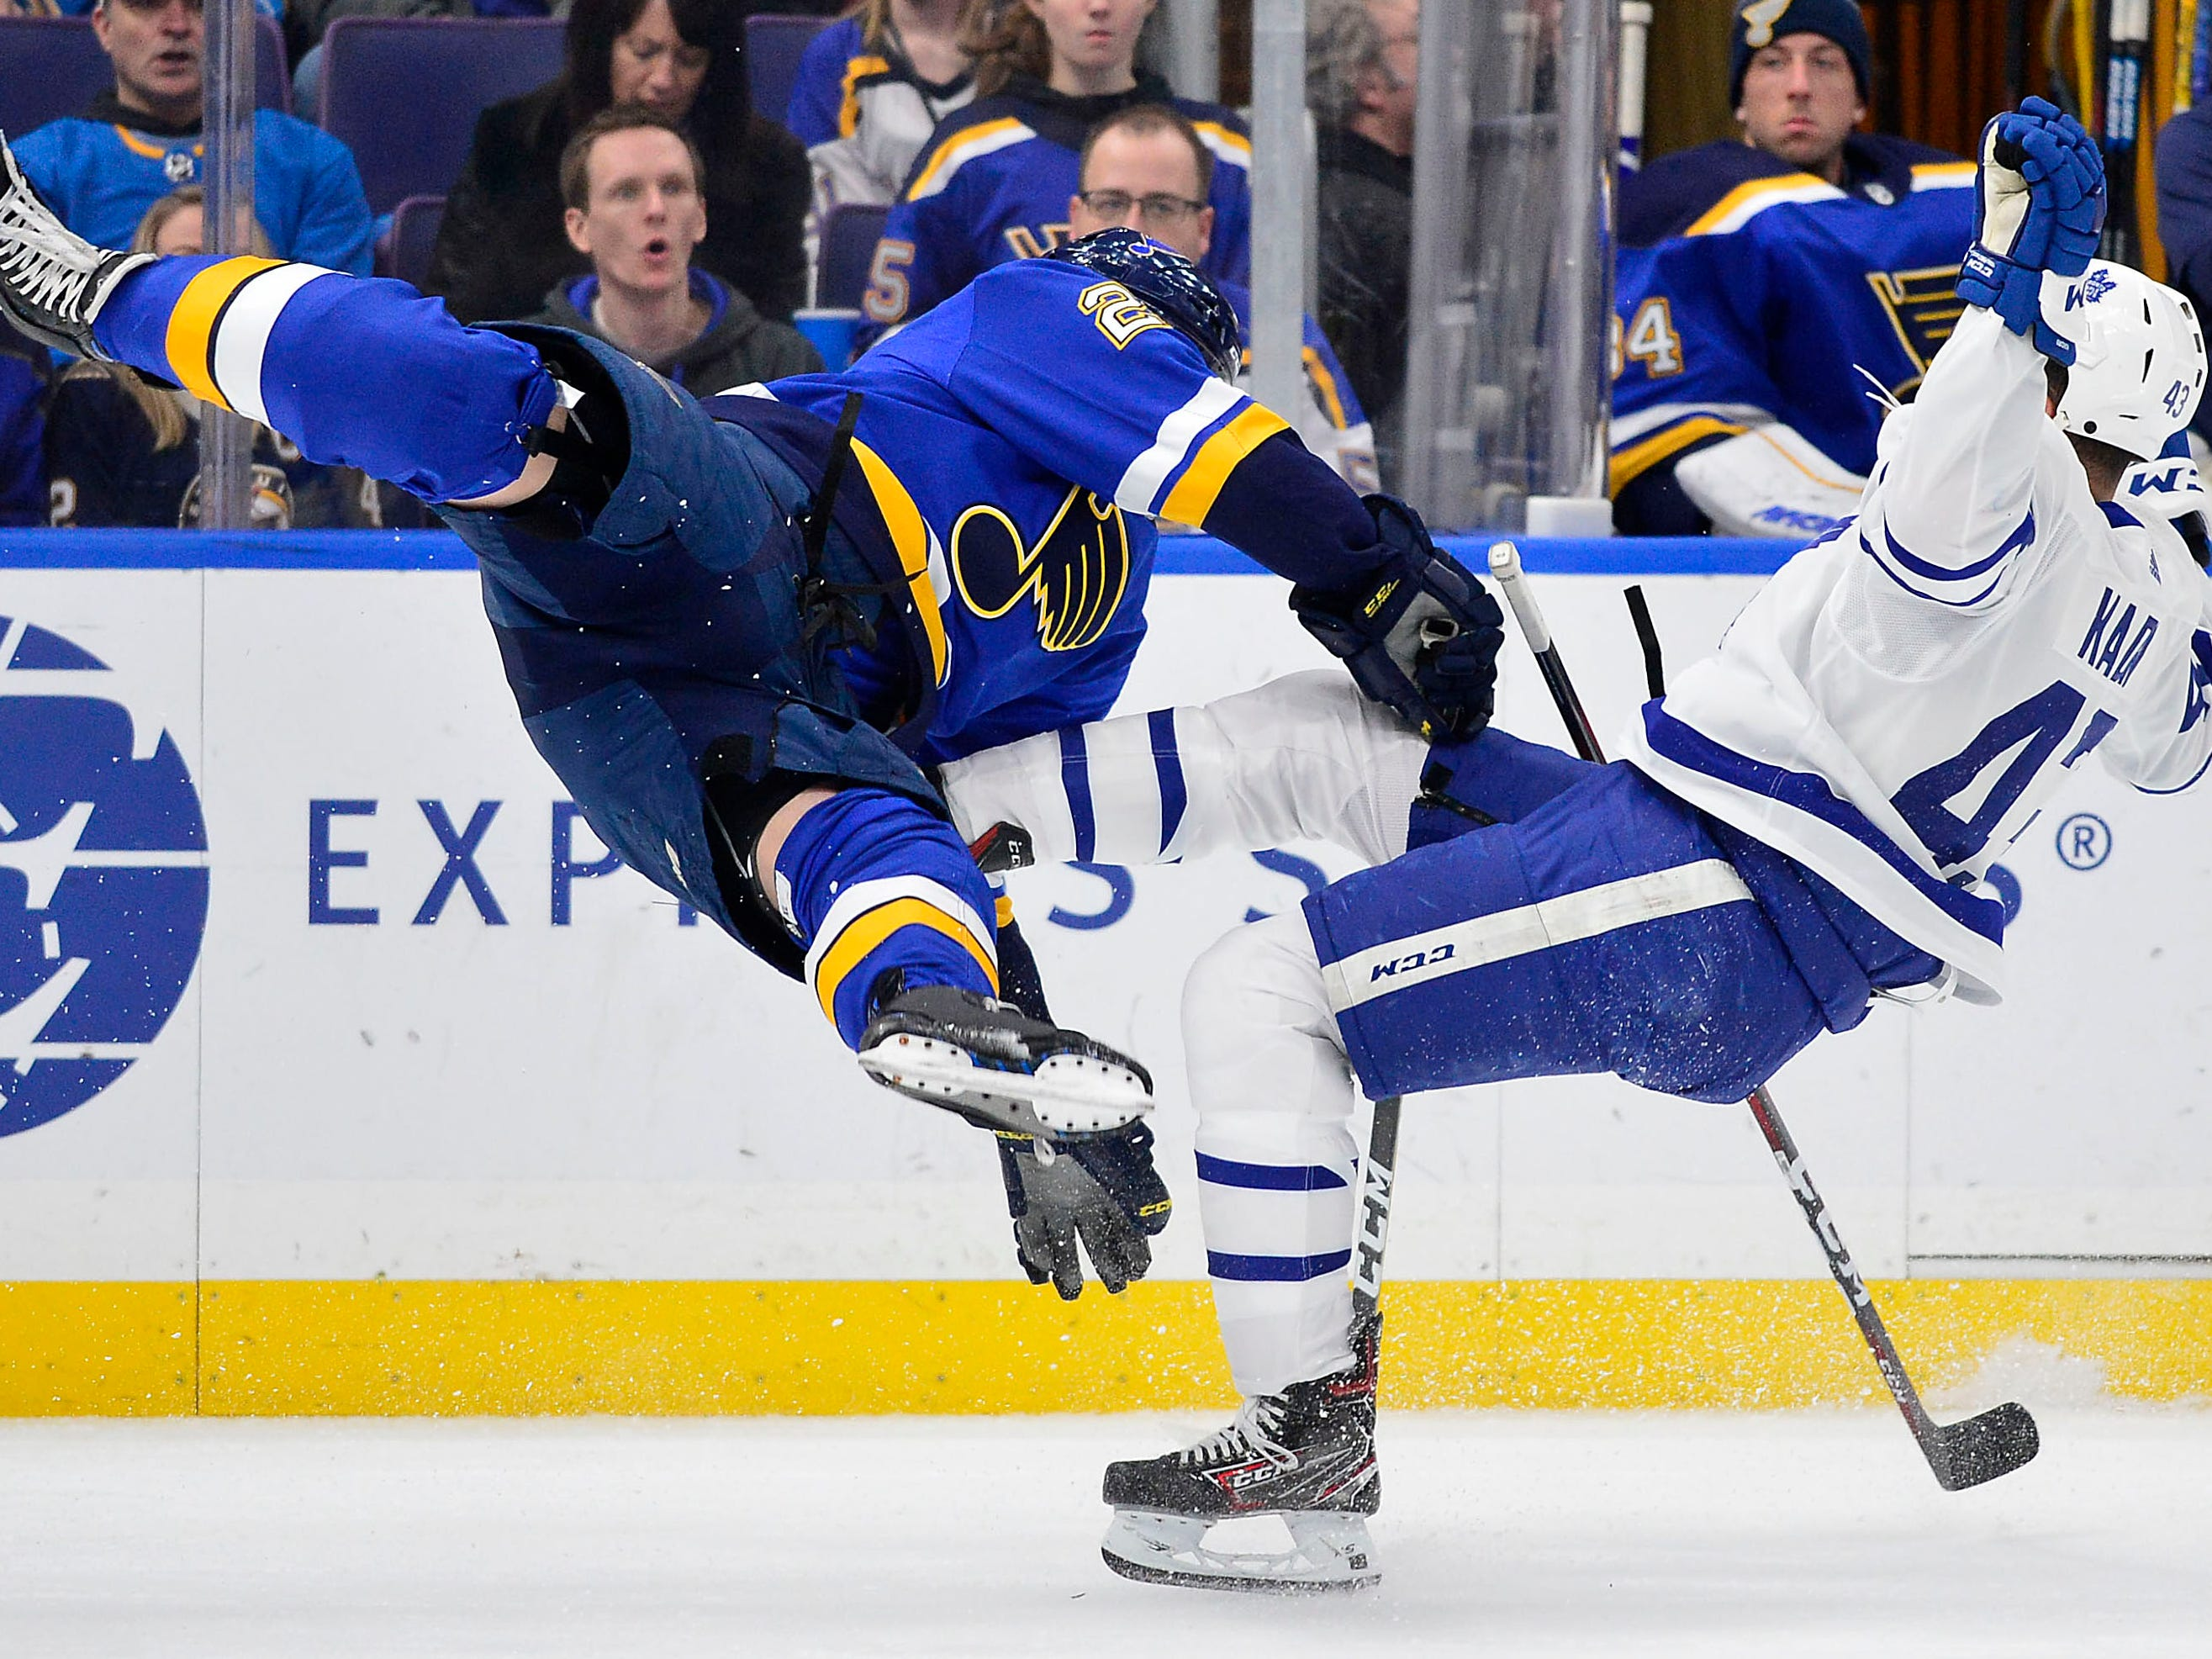 Feb. 19: Toronto Maple Leafs center Nazem Kadri, right, is checked by St. Louis Blues defenseman Vince Dunn. The Maple Leafs later announced that Kadri had a concussion.